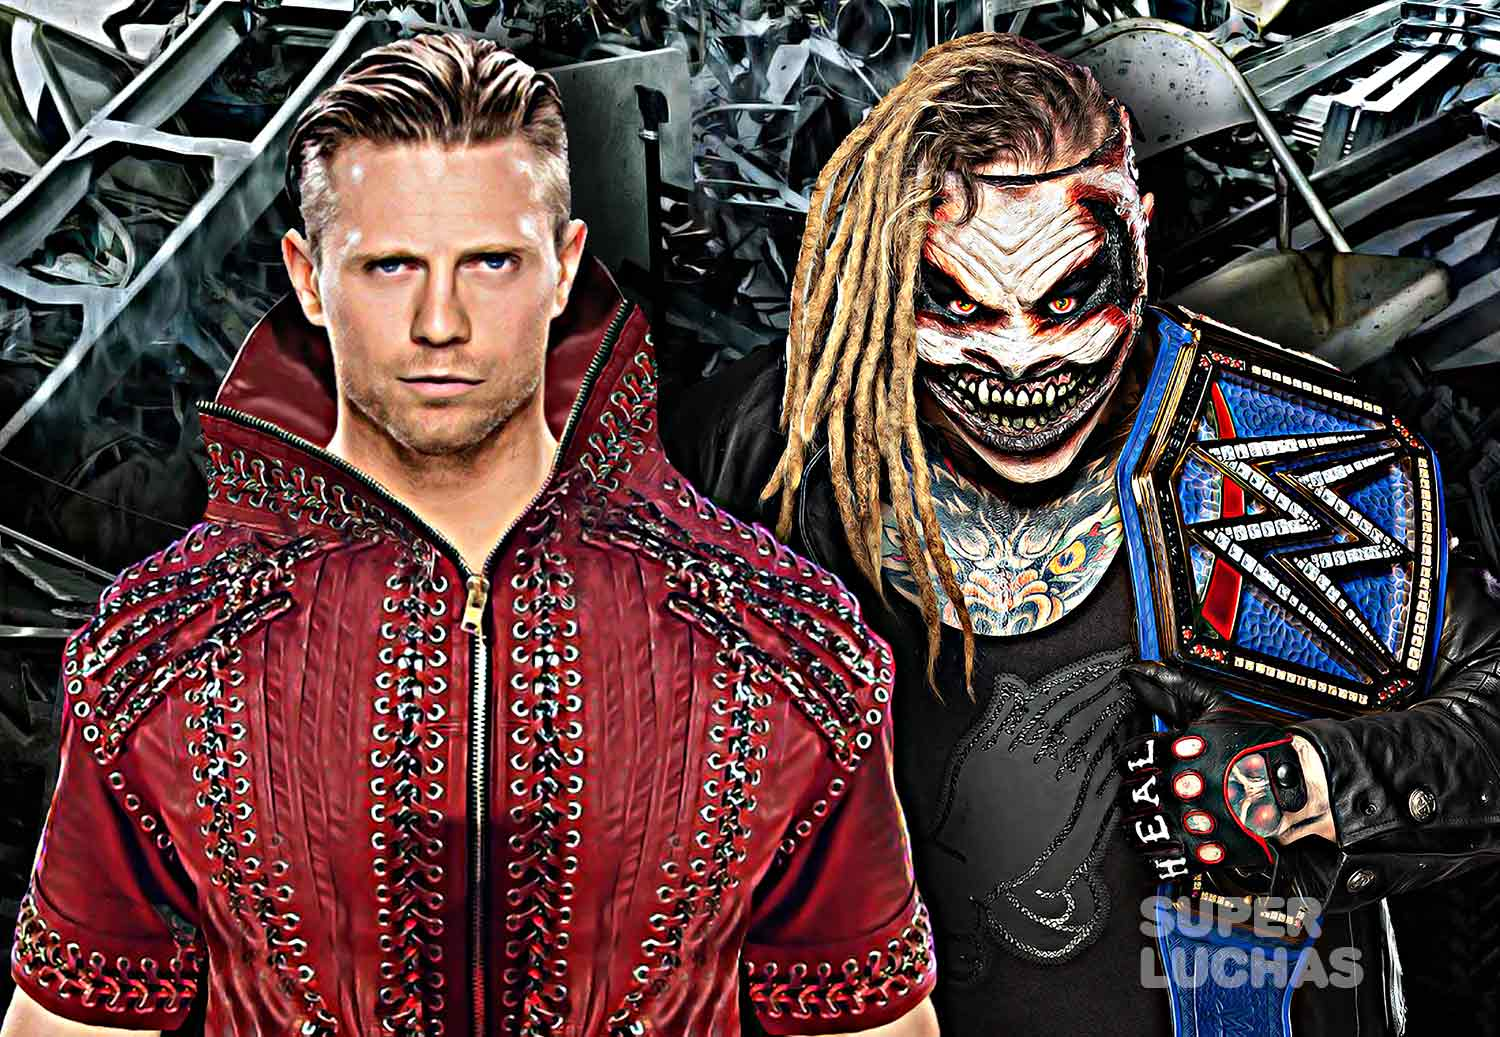 The Miz vs. The Fiend